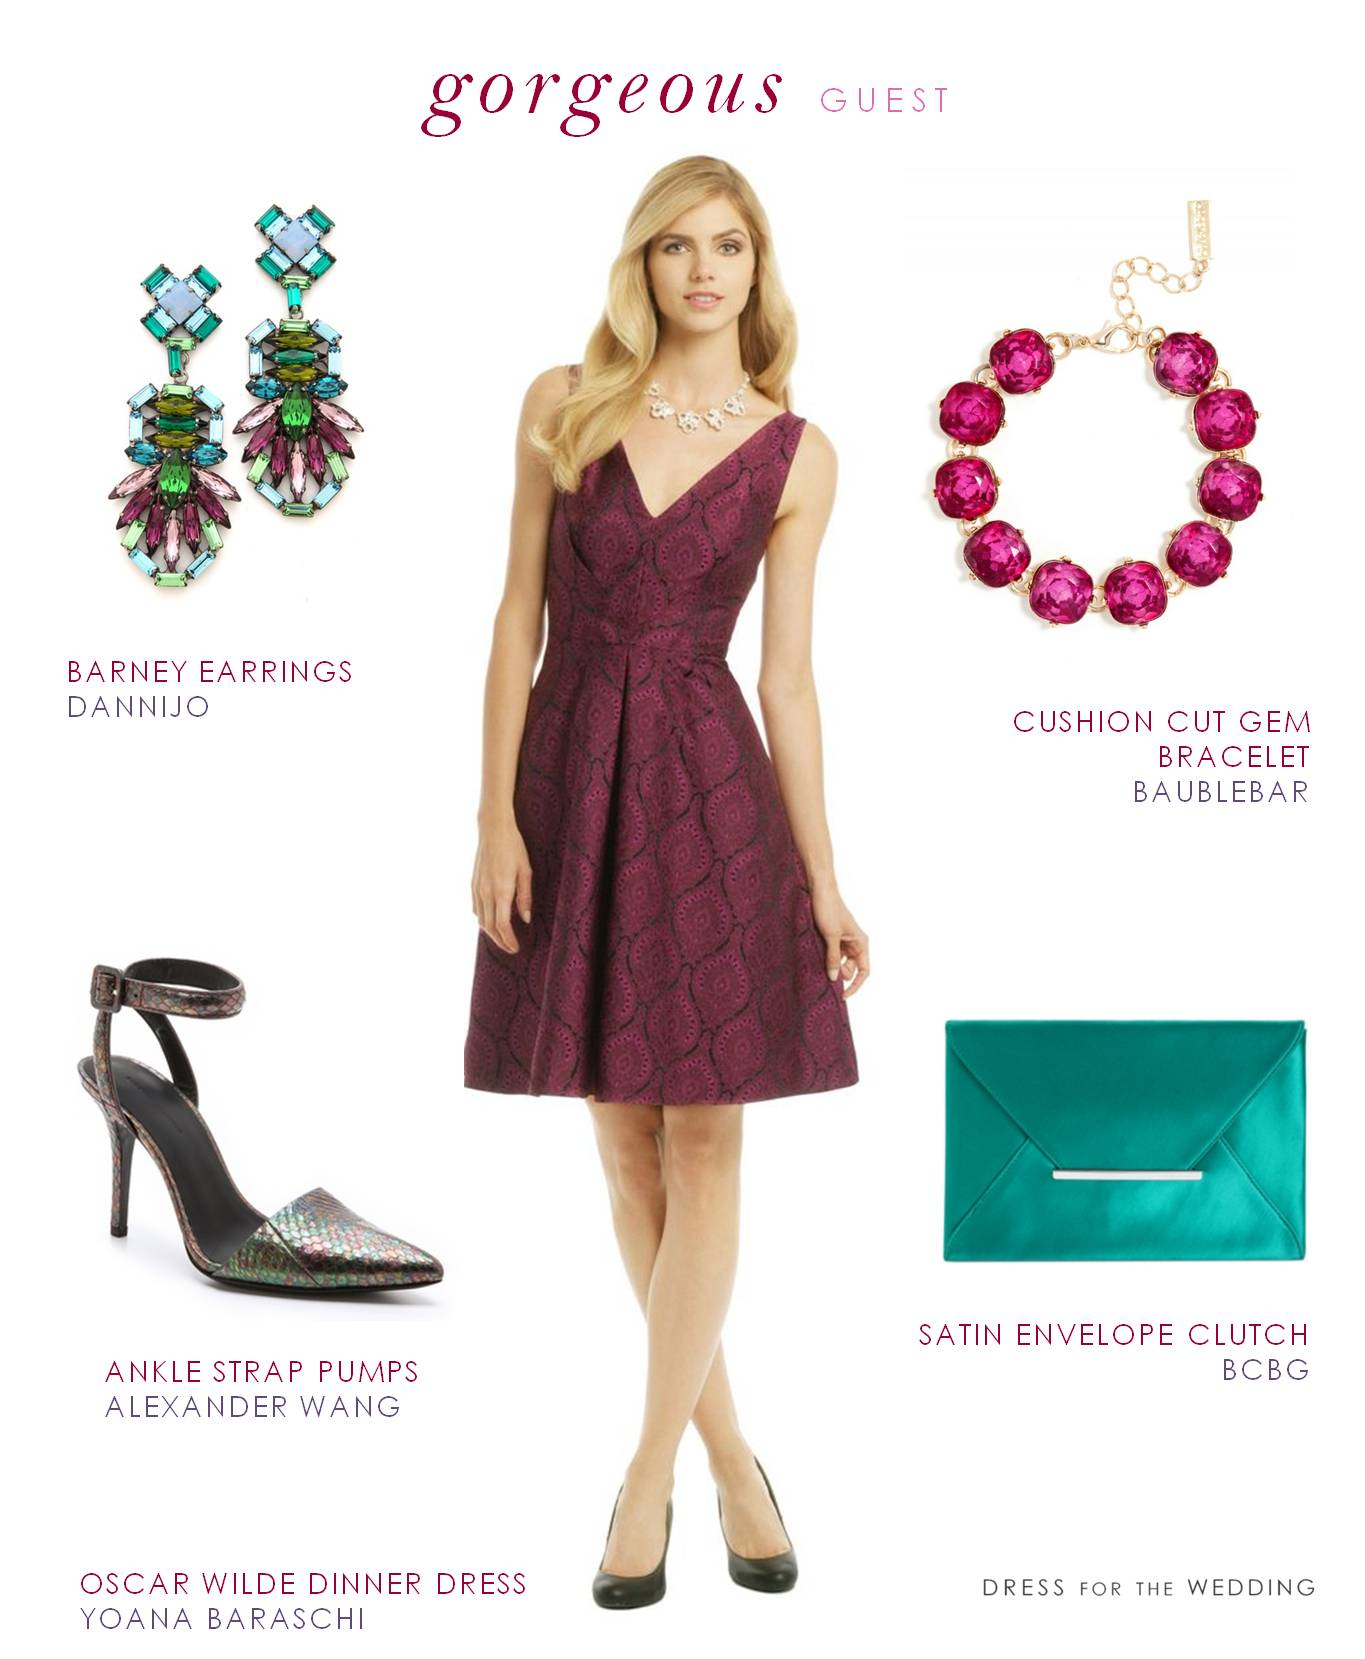 Burgundy Velvet Dress For A Fall Wedding Burgundy Dress and Jewel Tone